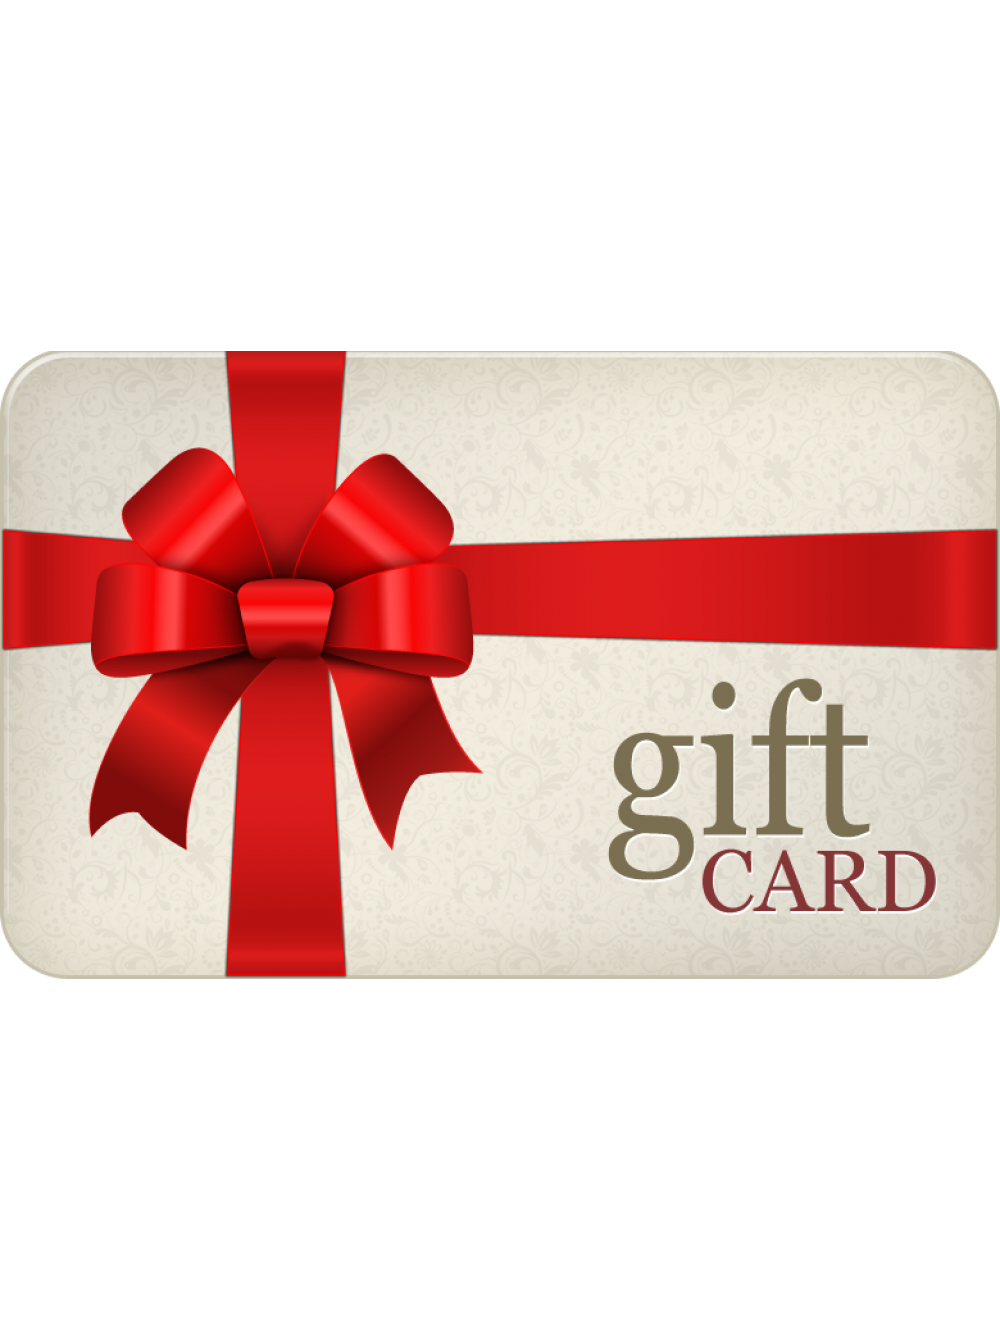 Gift certificate png. Cards fast lunchrock co